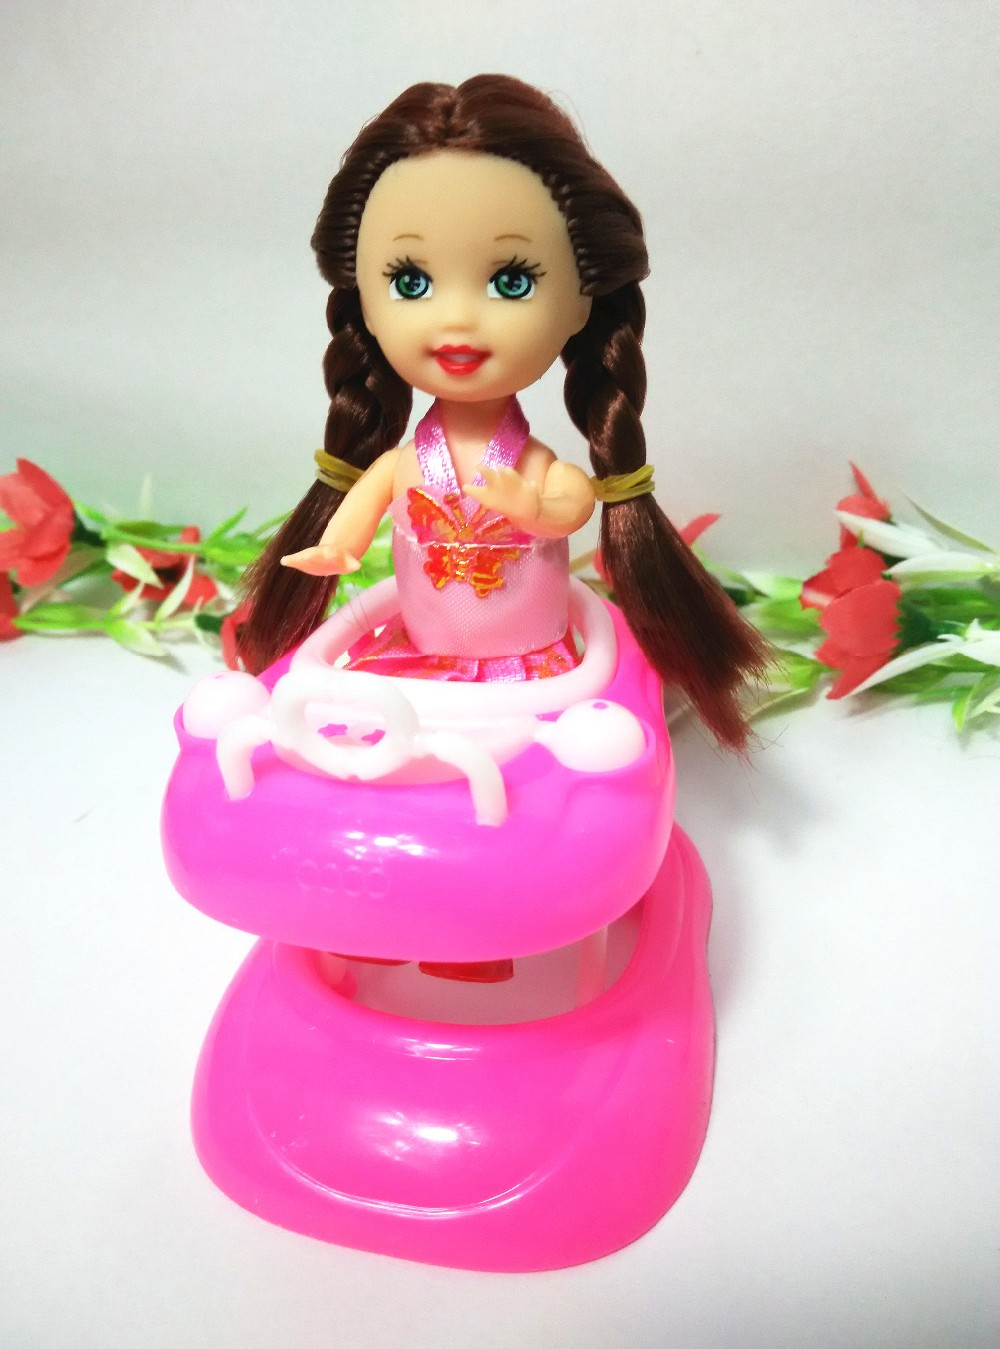 Child's play home toys Together with the kelly dolls Doll Equipment Handmade Doll's Plastic child walker For Barbie Dolls  aa89